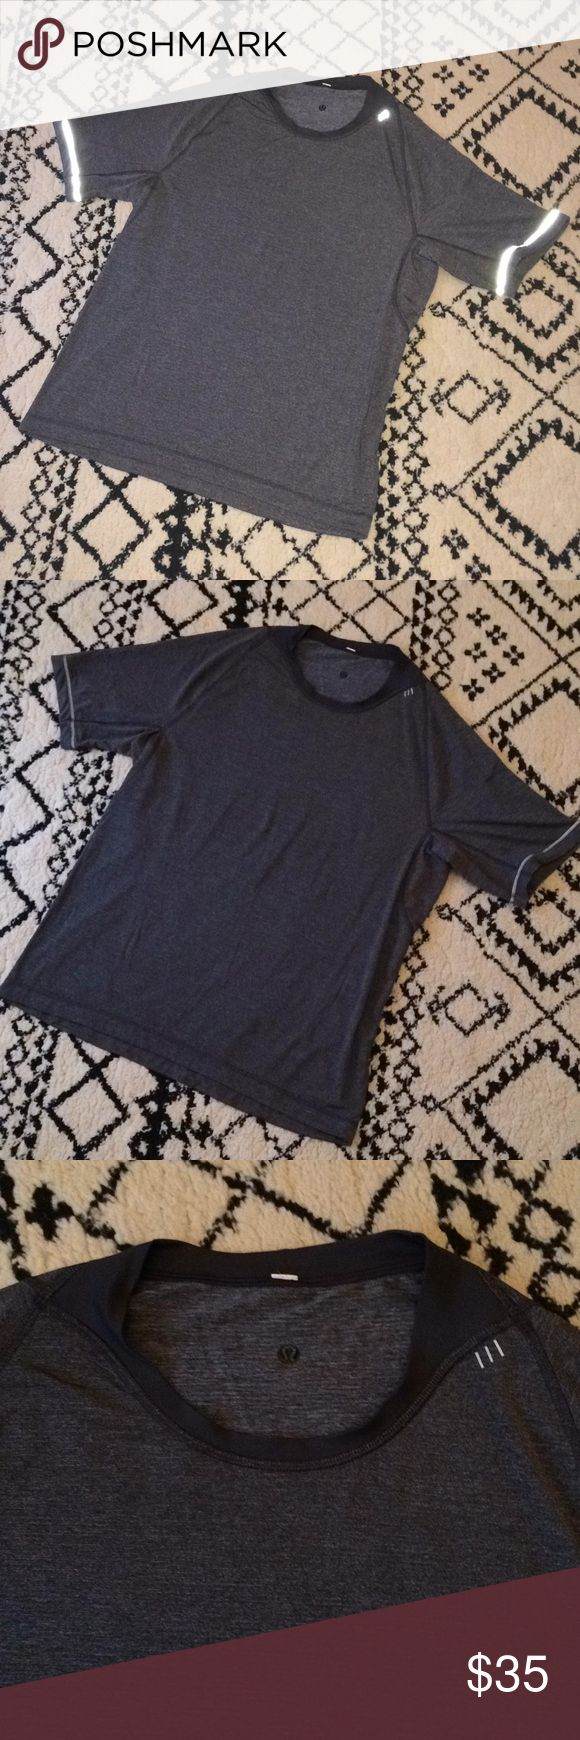 Lululemon l Grey Short Sleeve Crewneck Lightweight Lululemon Athletica medium-dark tone gray crewneck short sleeve top. A little bit heather gray, tinge of white mixed in. Reflective stitching on the sleeves and a little bit at the front. Tag has been cut out, Measures like an extra large. Excellent pre-loved condition. lululemon athletica Shirts Tees - Short Sleeve